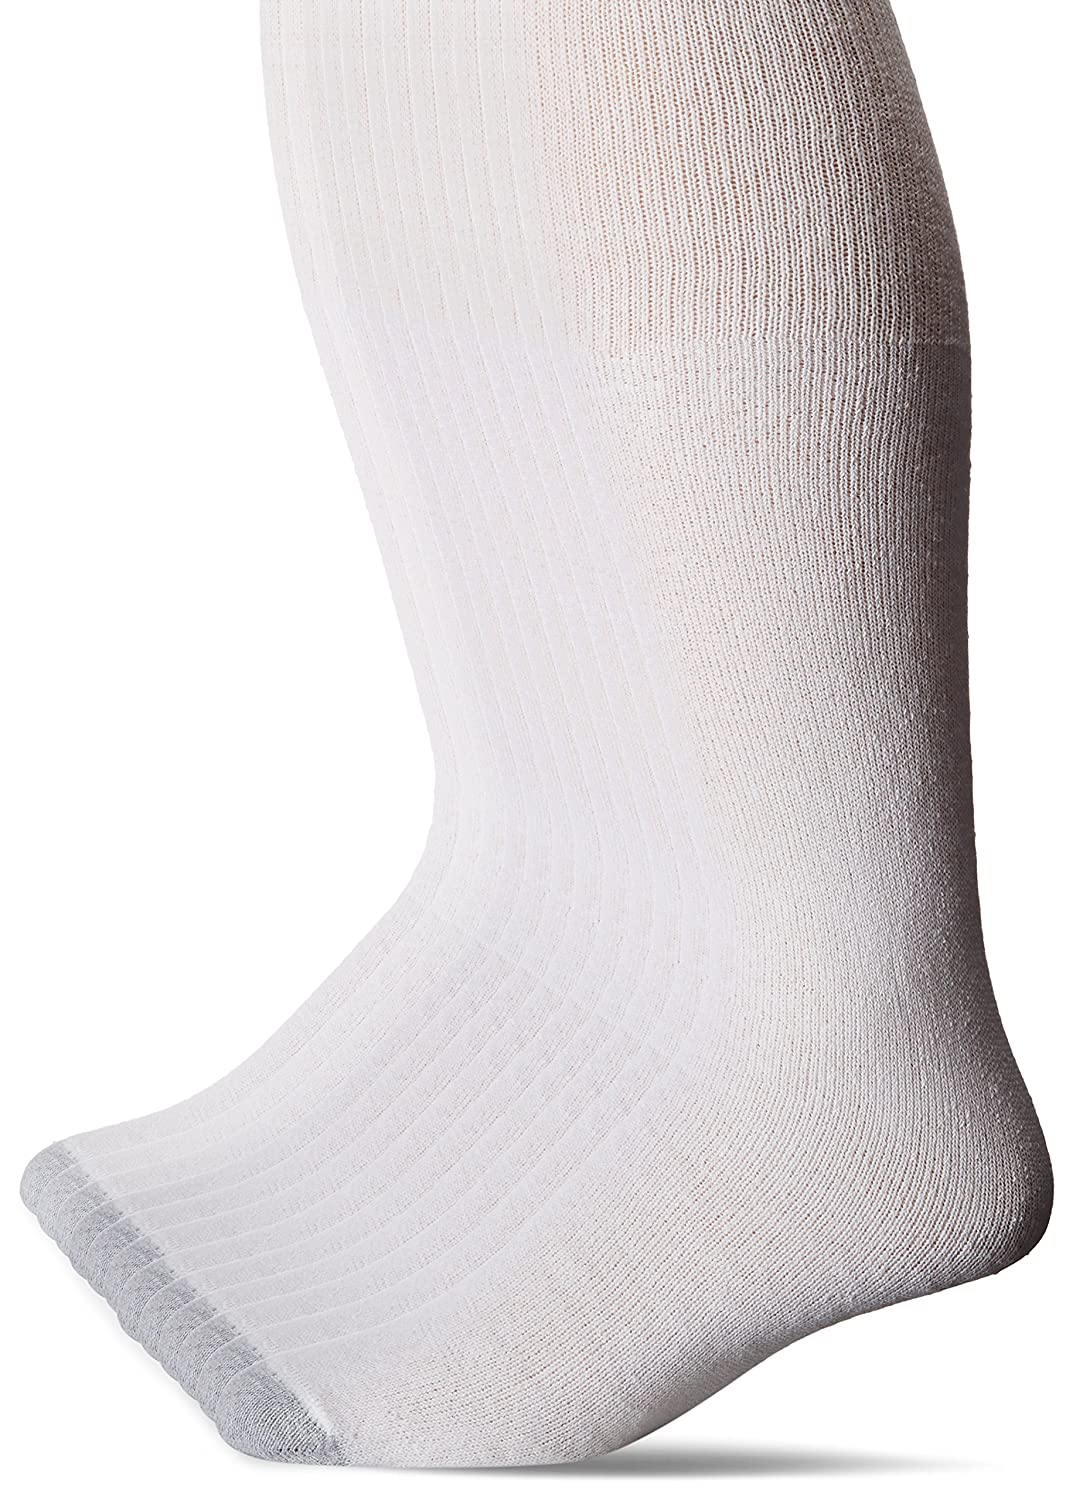 Hanes Men's FreshIQ Over The Calf Tube Socks (Pack of 12) White 10-13/Shoe Size 6-12 Hanes Men's Socks 180V12